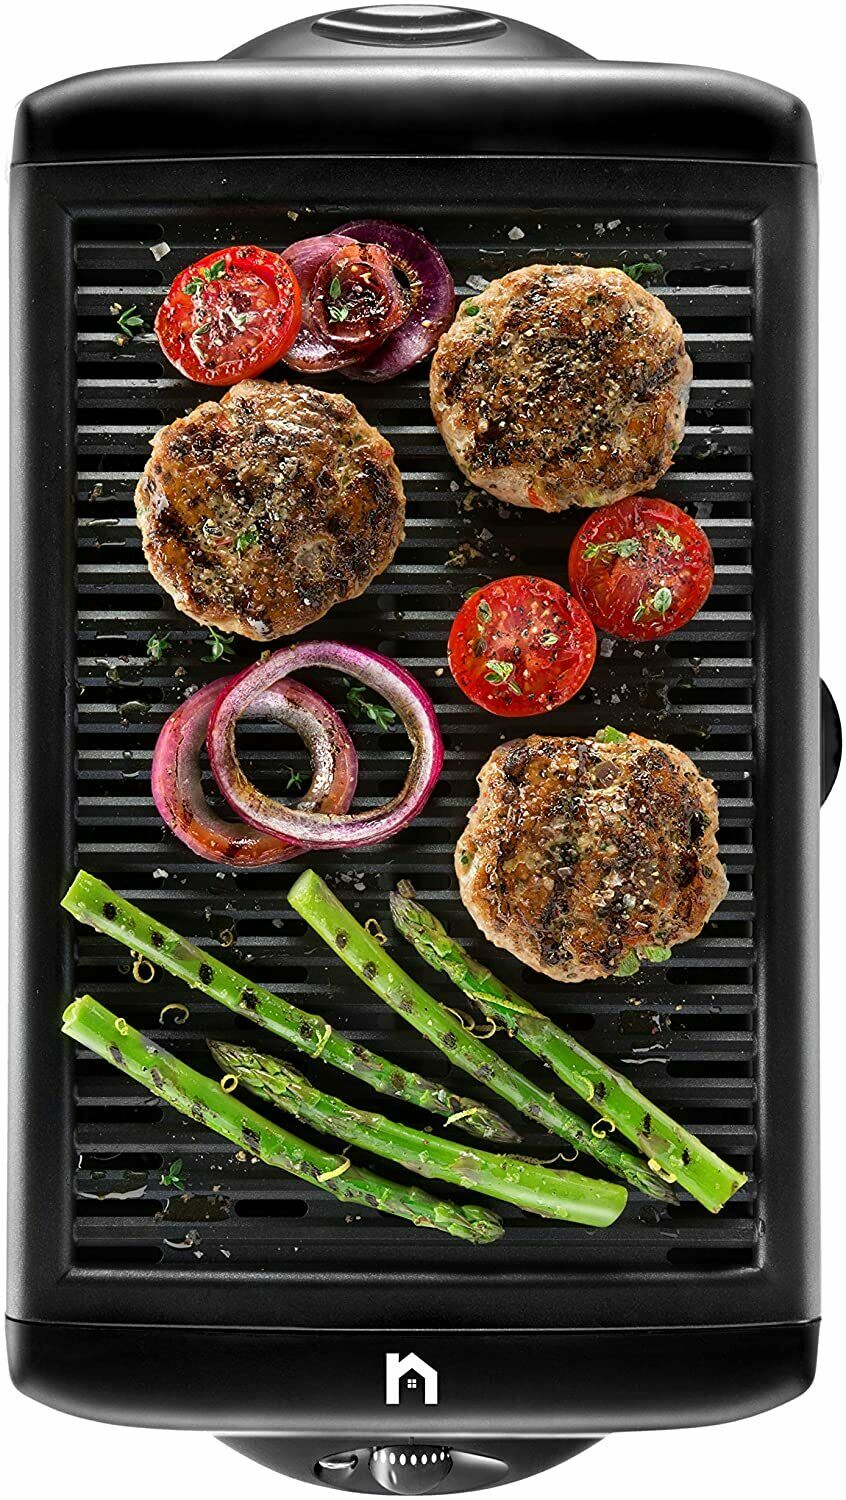 Electric Smokeless Indoor Grill, Large Non-Stick Cooking Sur